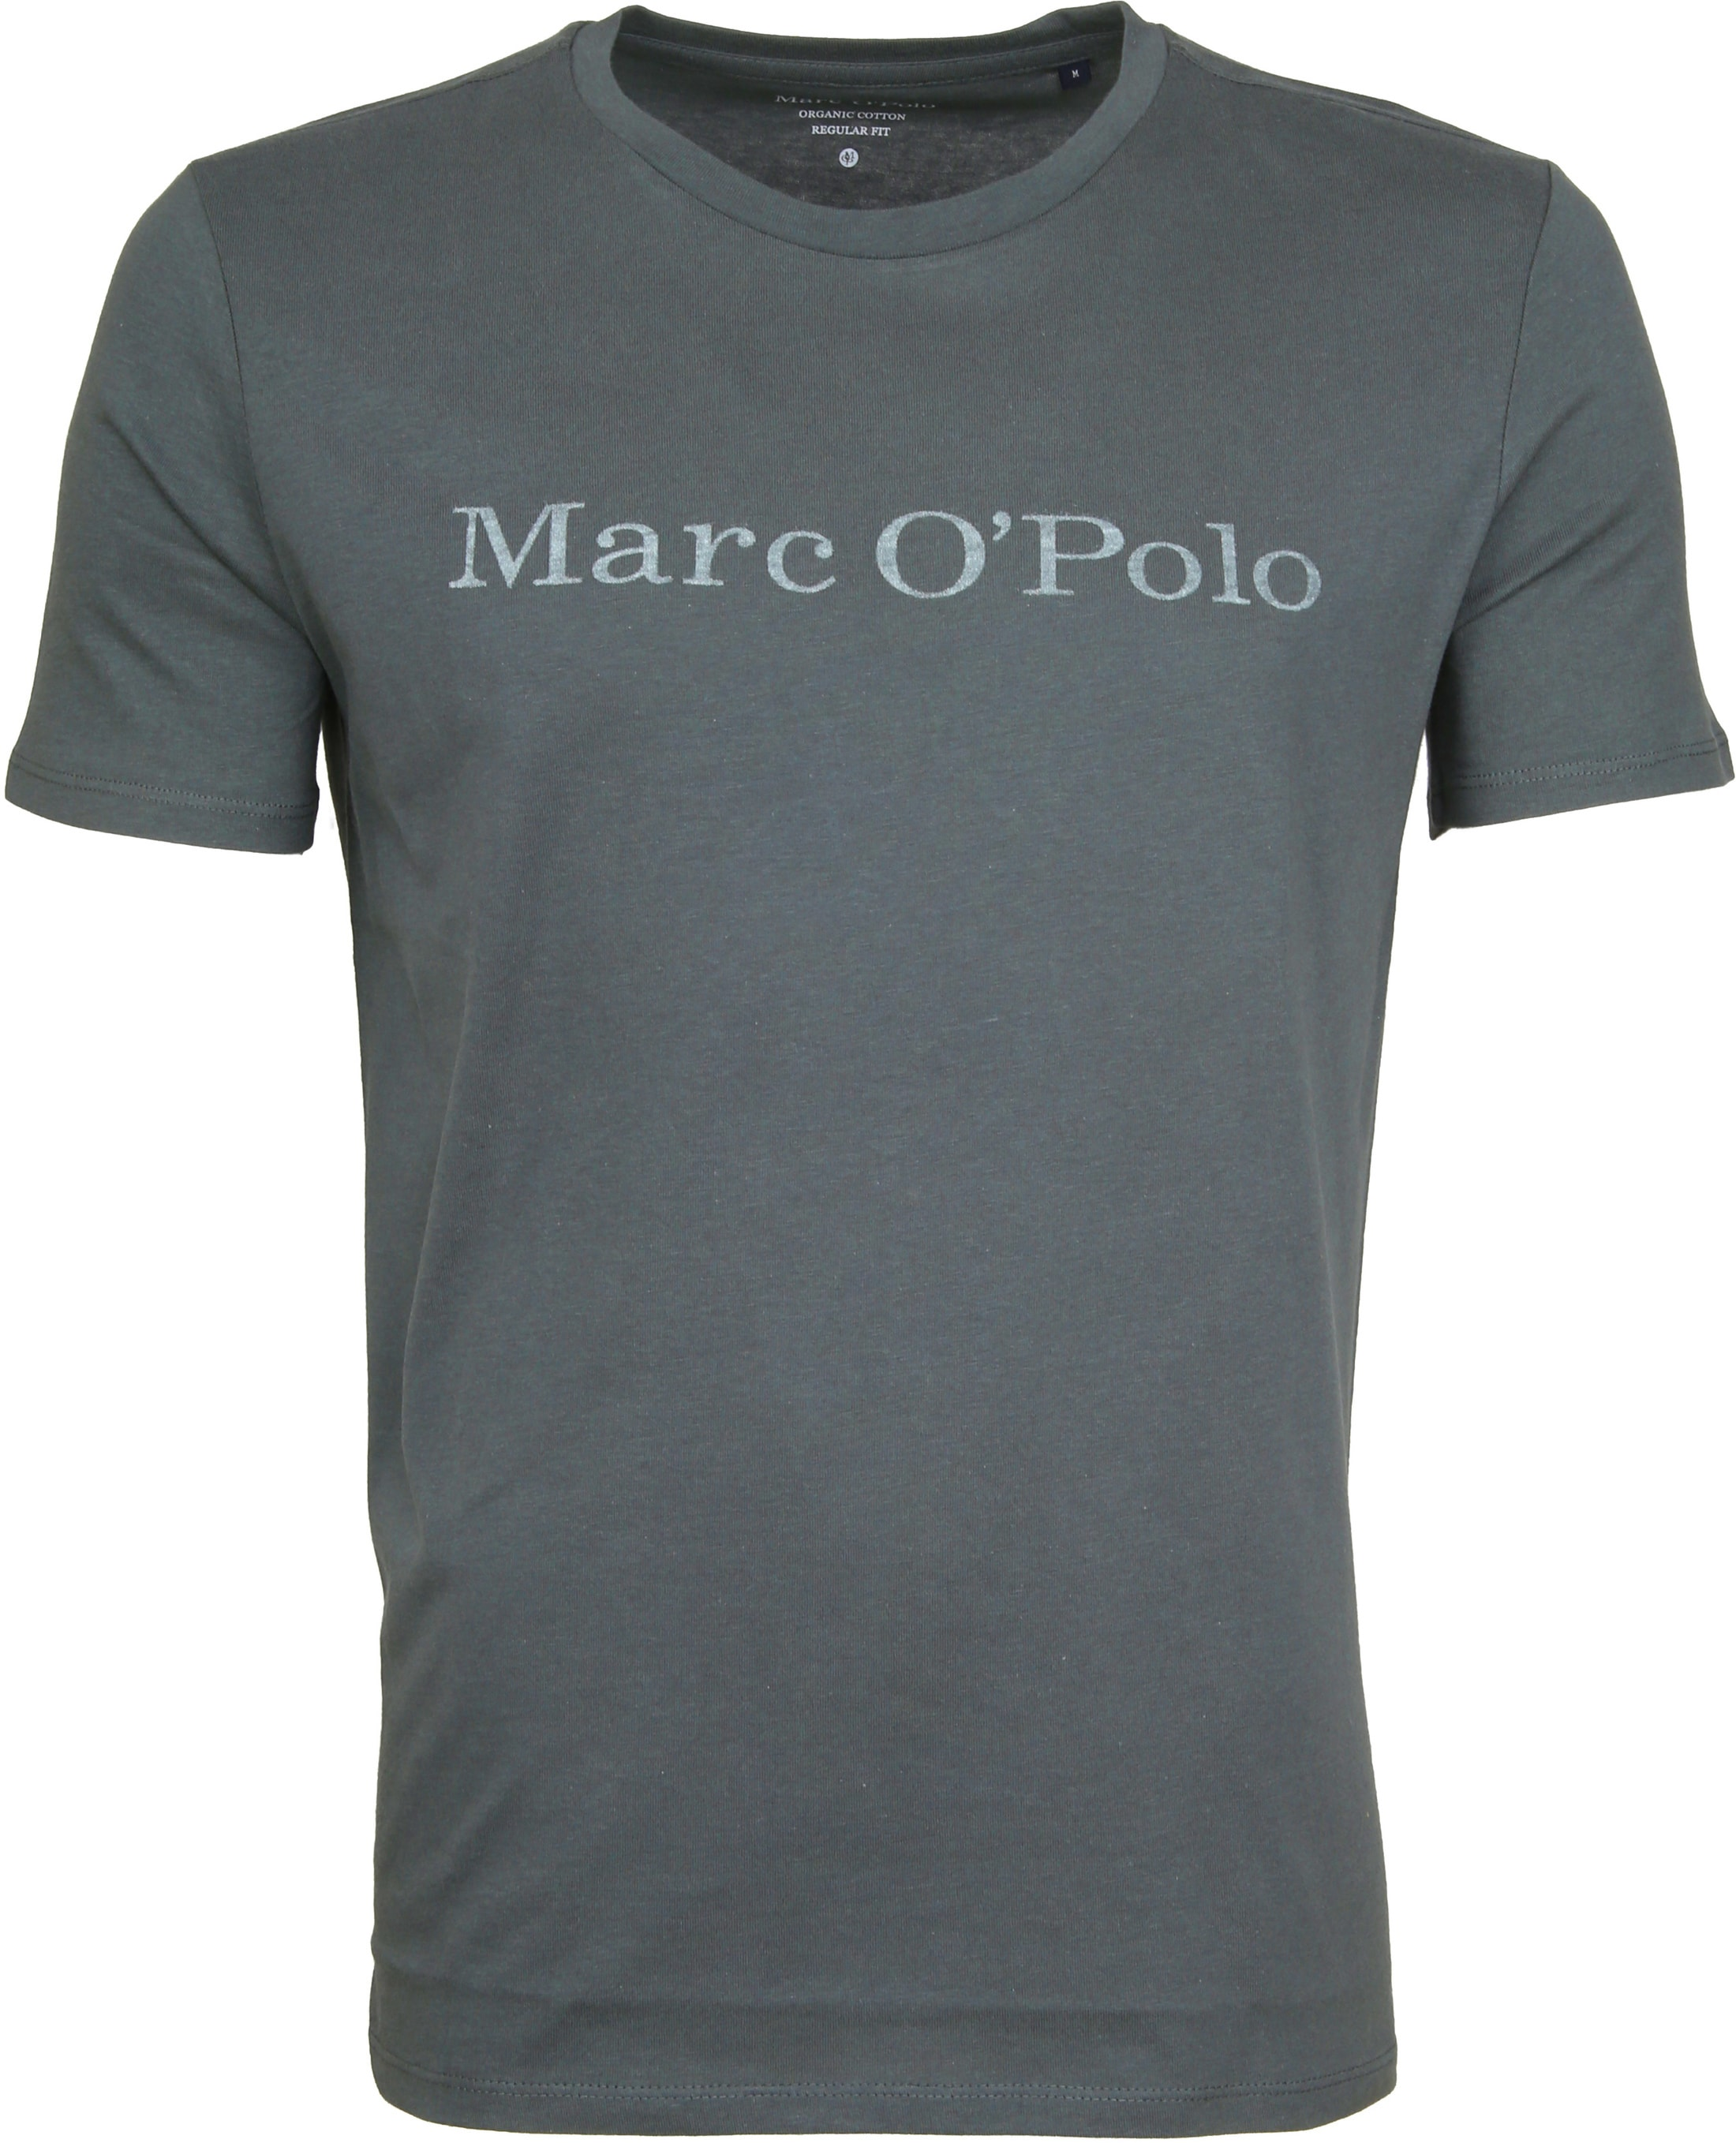 best service cdcce ae61b Marc O'Polo T-Shirt Green 921222051230 order online | Suitable